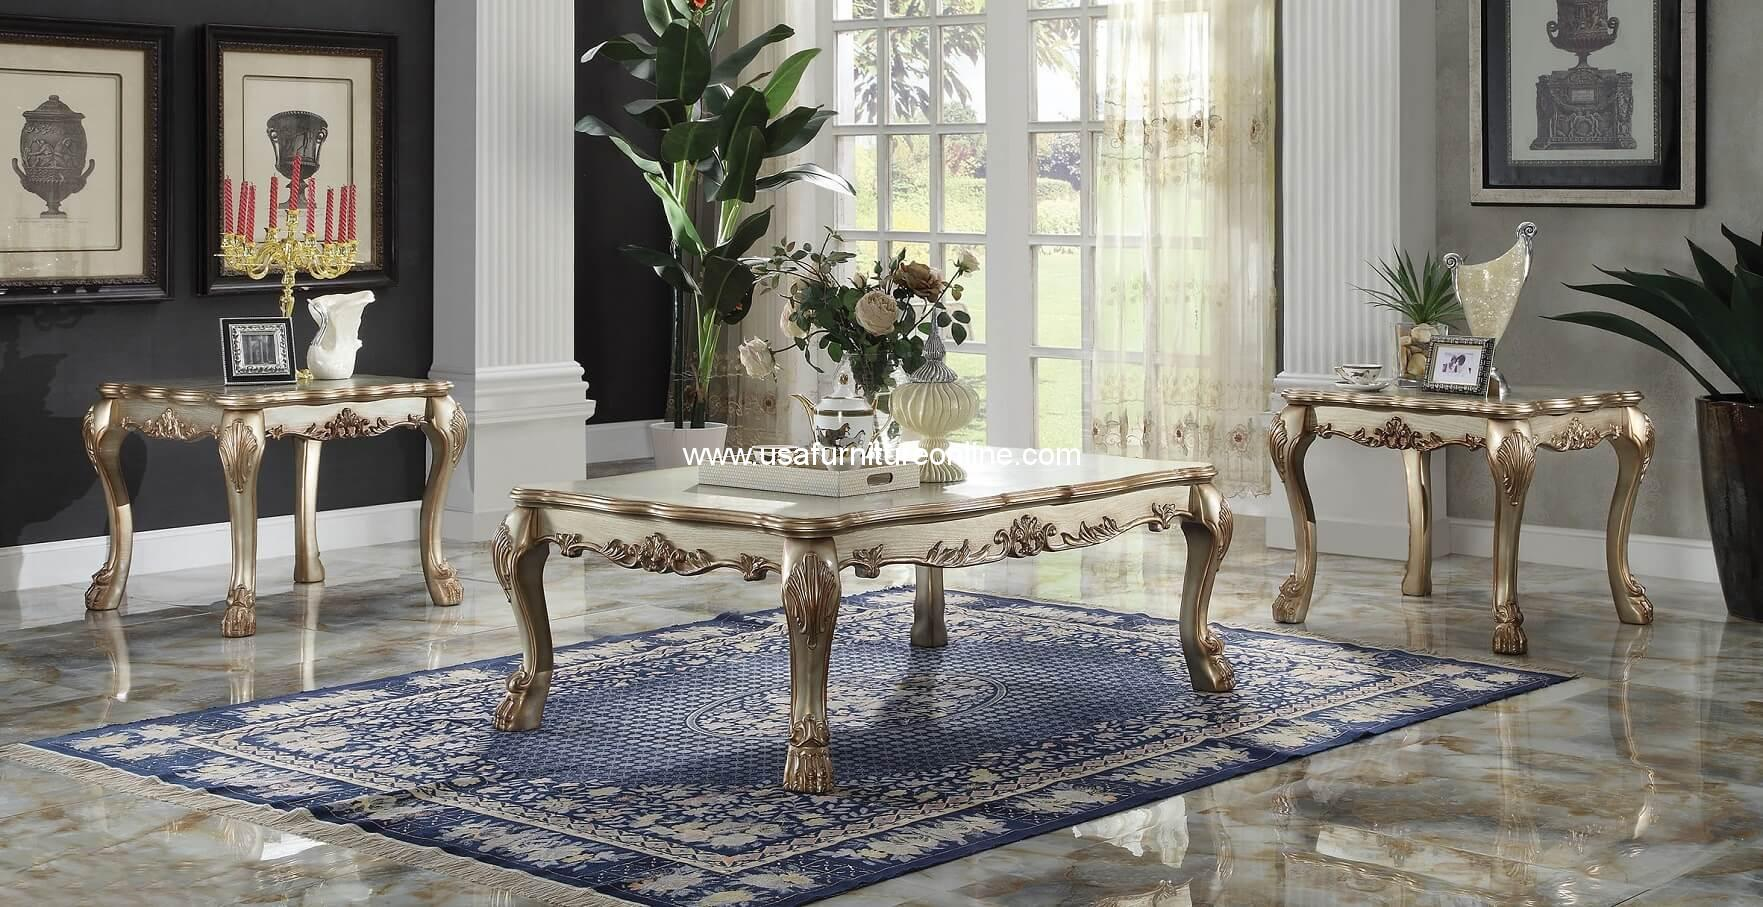 Acme Piece Dresden Coffee Table Set Gold Patina Finish USA - 3 piece oval coffee table set